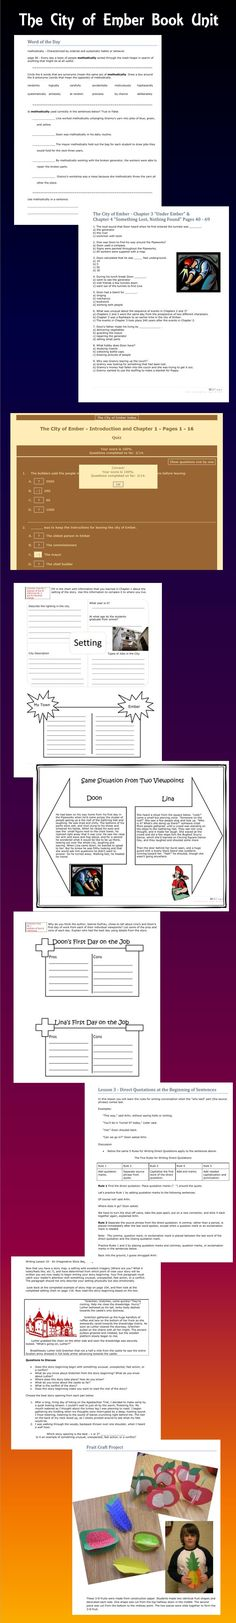 A Teacher's Resource Guide to use with The City of Ember contains lessons aligned to the Common Core Standards for grades 4 – 6. This comprehensive unit includes vocabulary practice, comprehension quizzes (both multiple choice and constructive response), skill practice, and language arts lessons. $